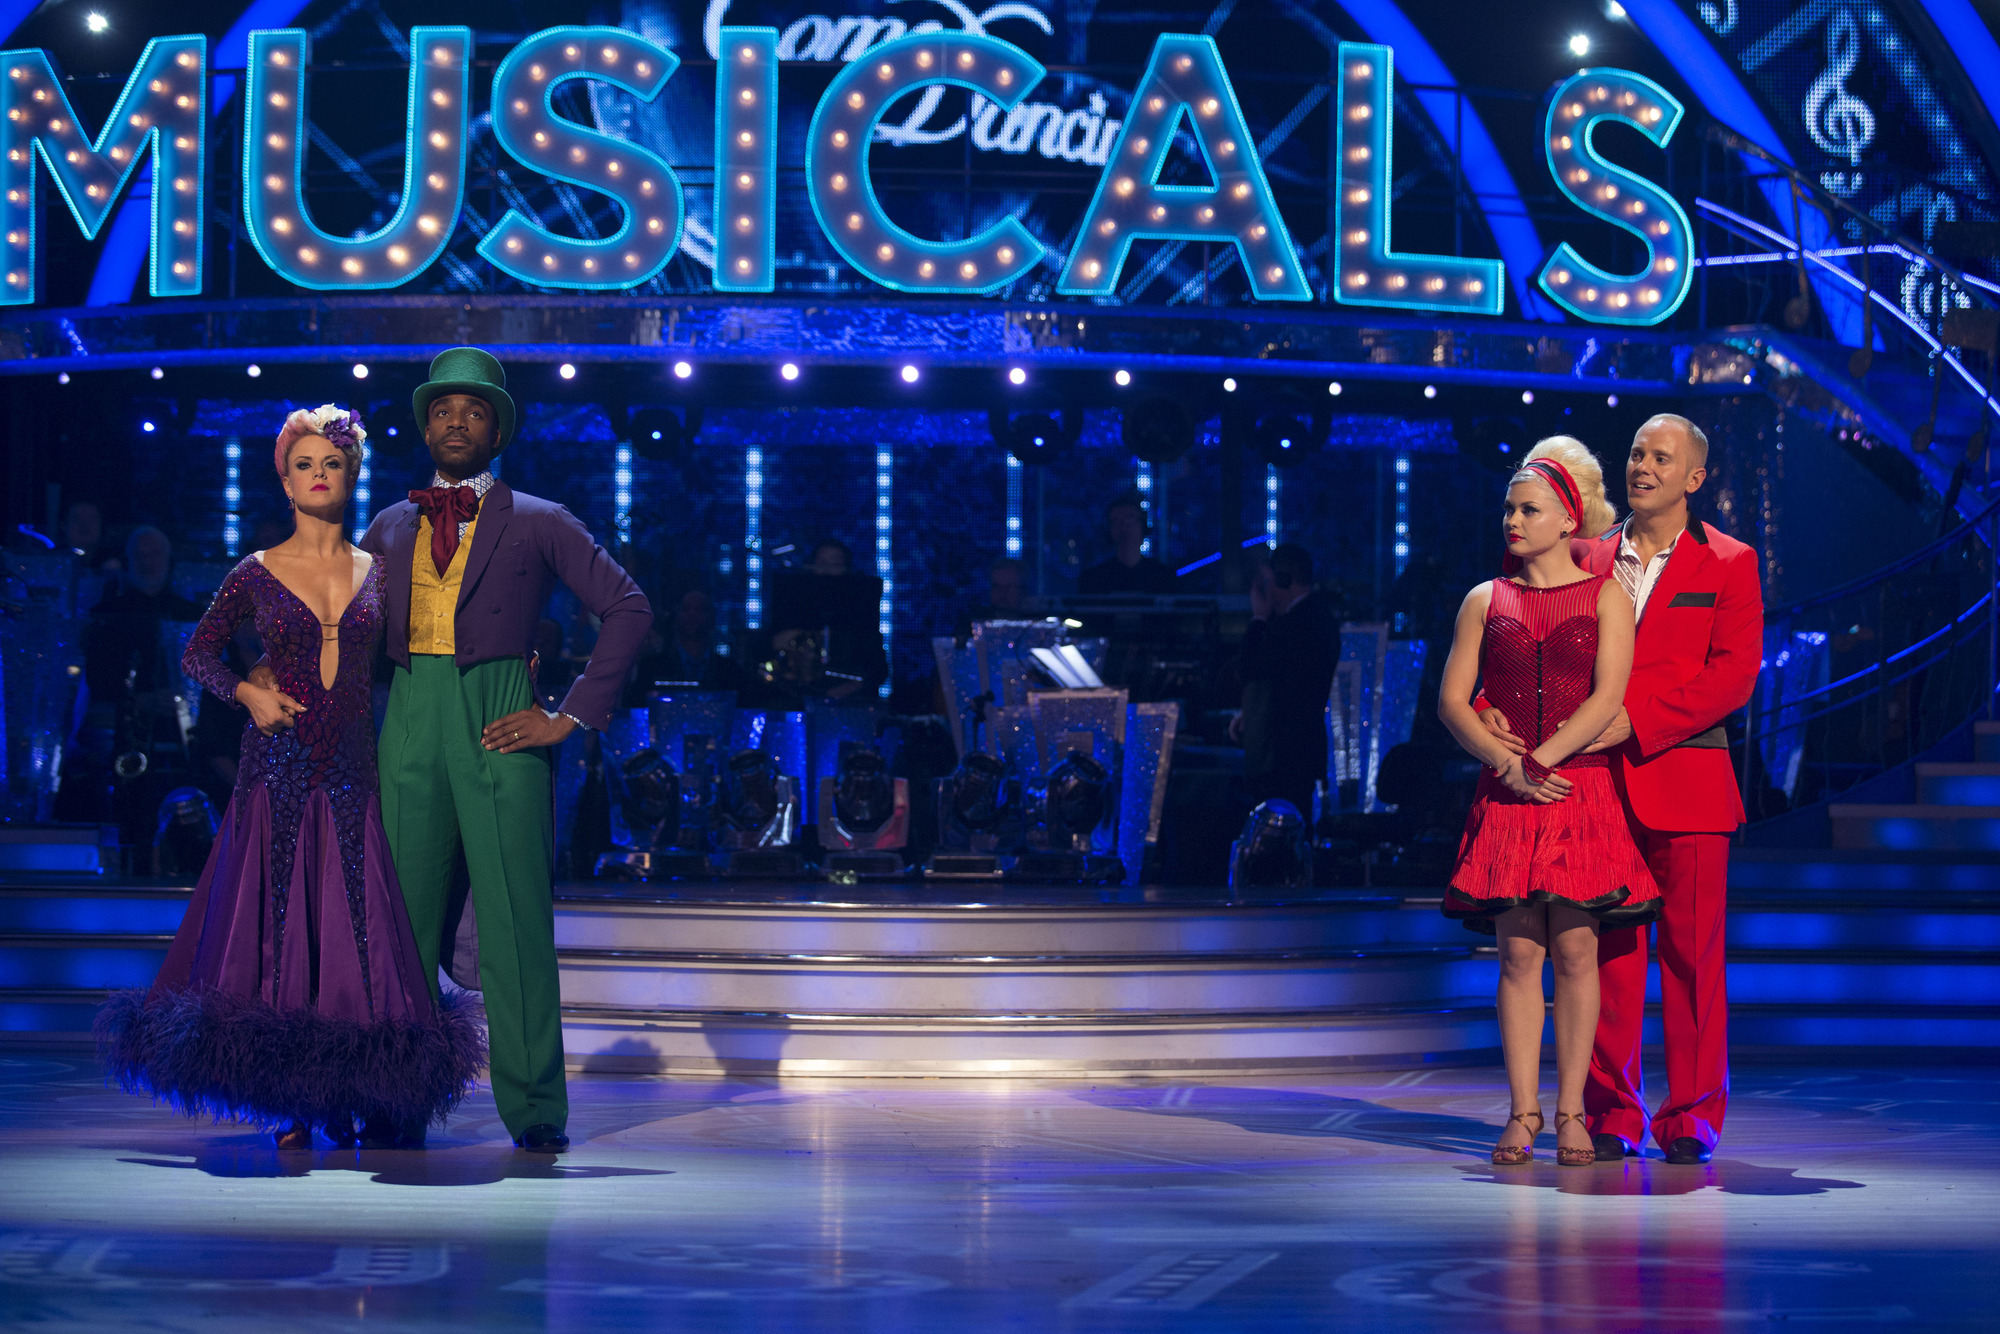 Strictly Come Dancing: Judge Rinder gets his marching orders and urges fans to give ballroom dancing a try